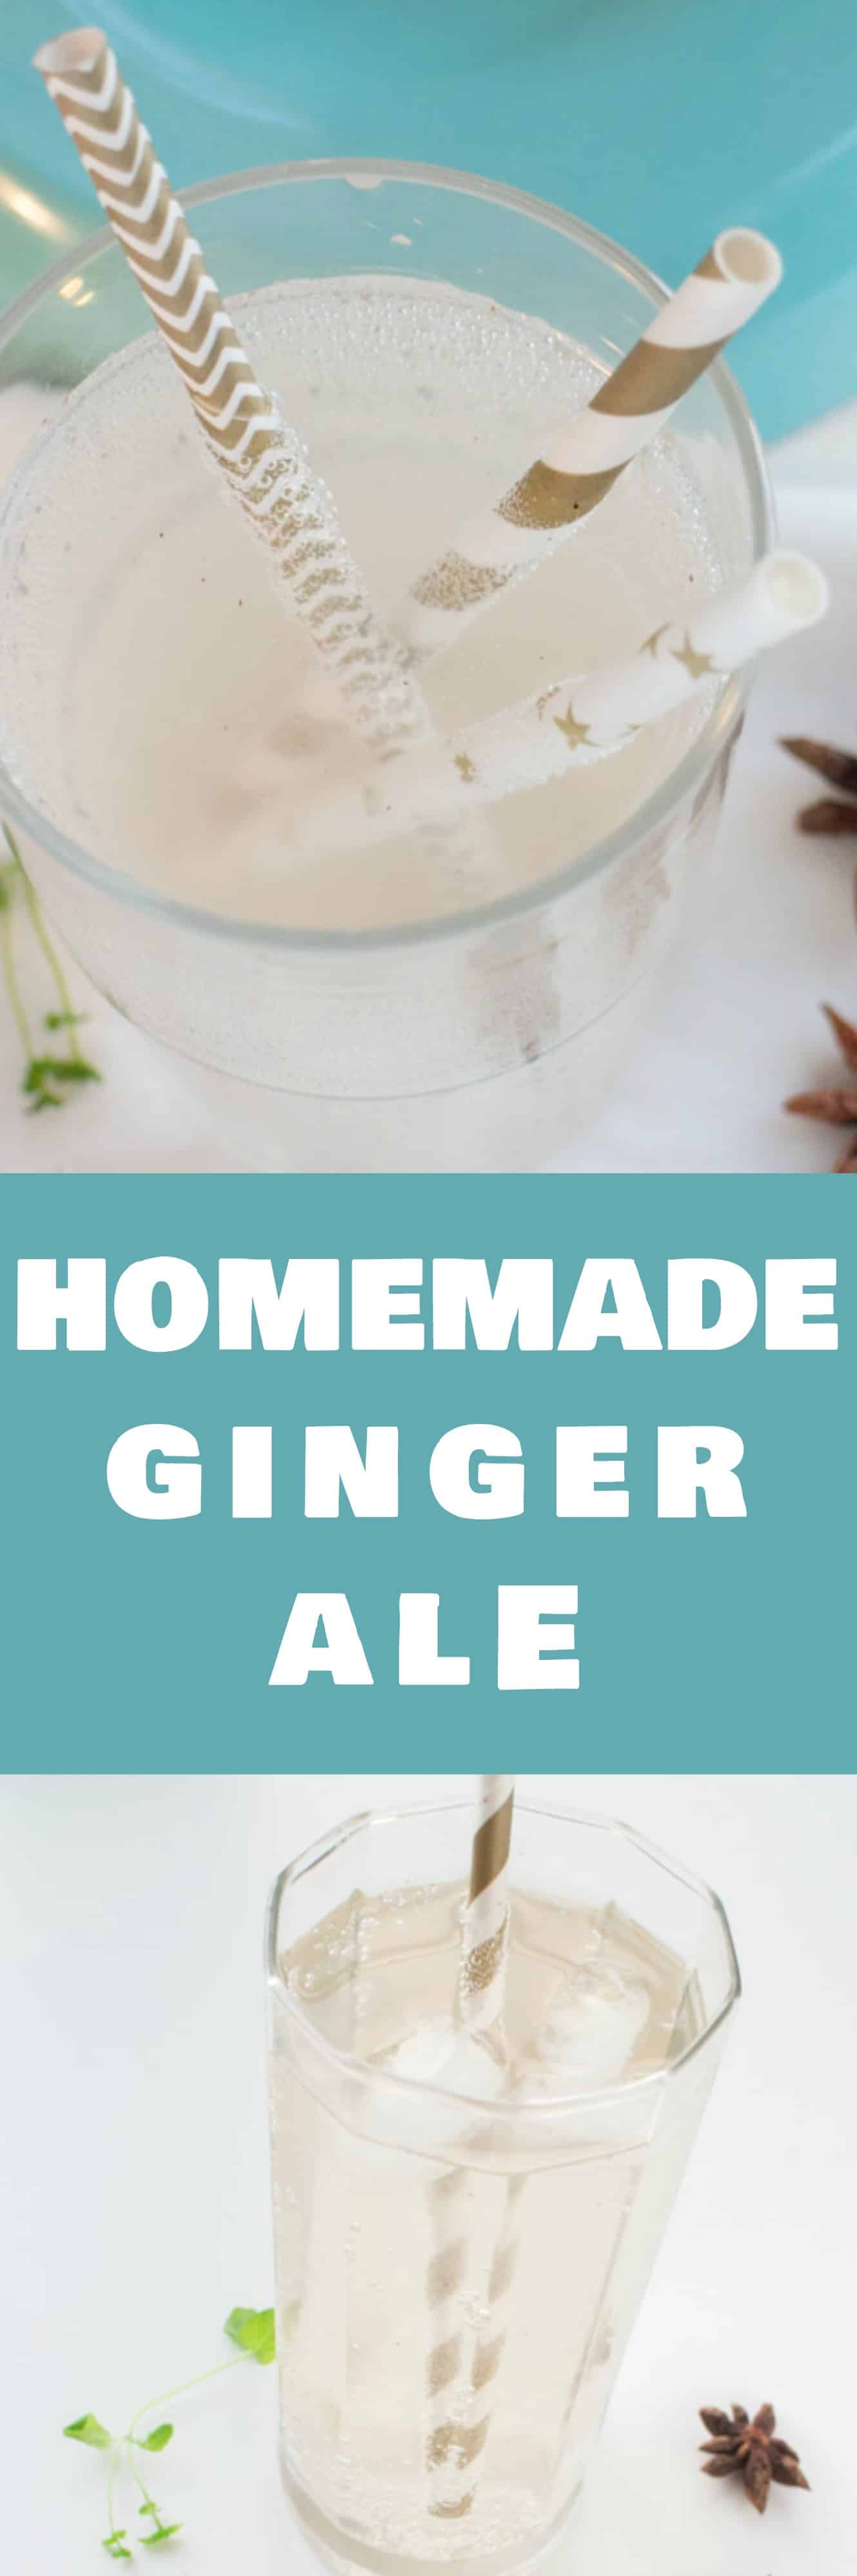 HOMEMADE Ginger Ale Soda! This DIY simple syrup recipe is easy to make! Make your favorite flavor soda healthy with fresh ingredients and a sparkling water sodastream machine!